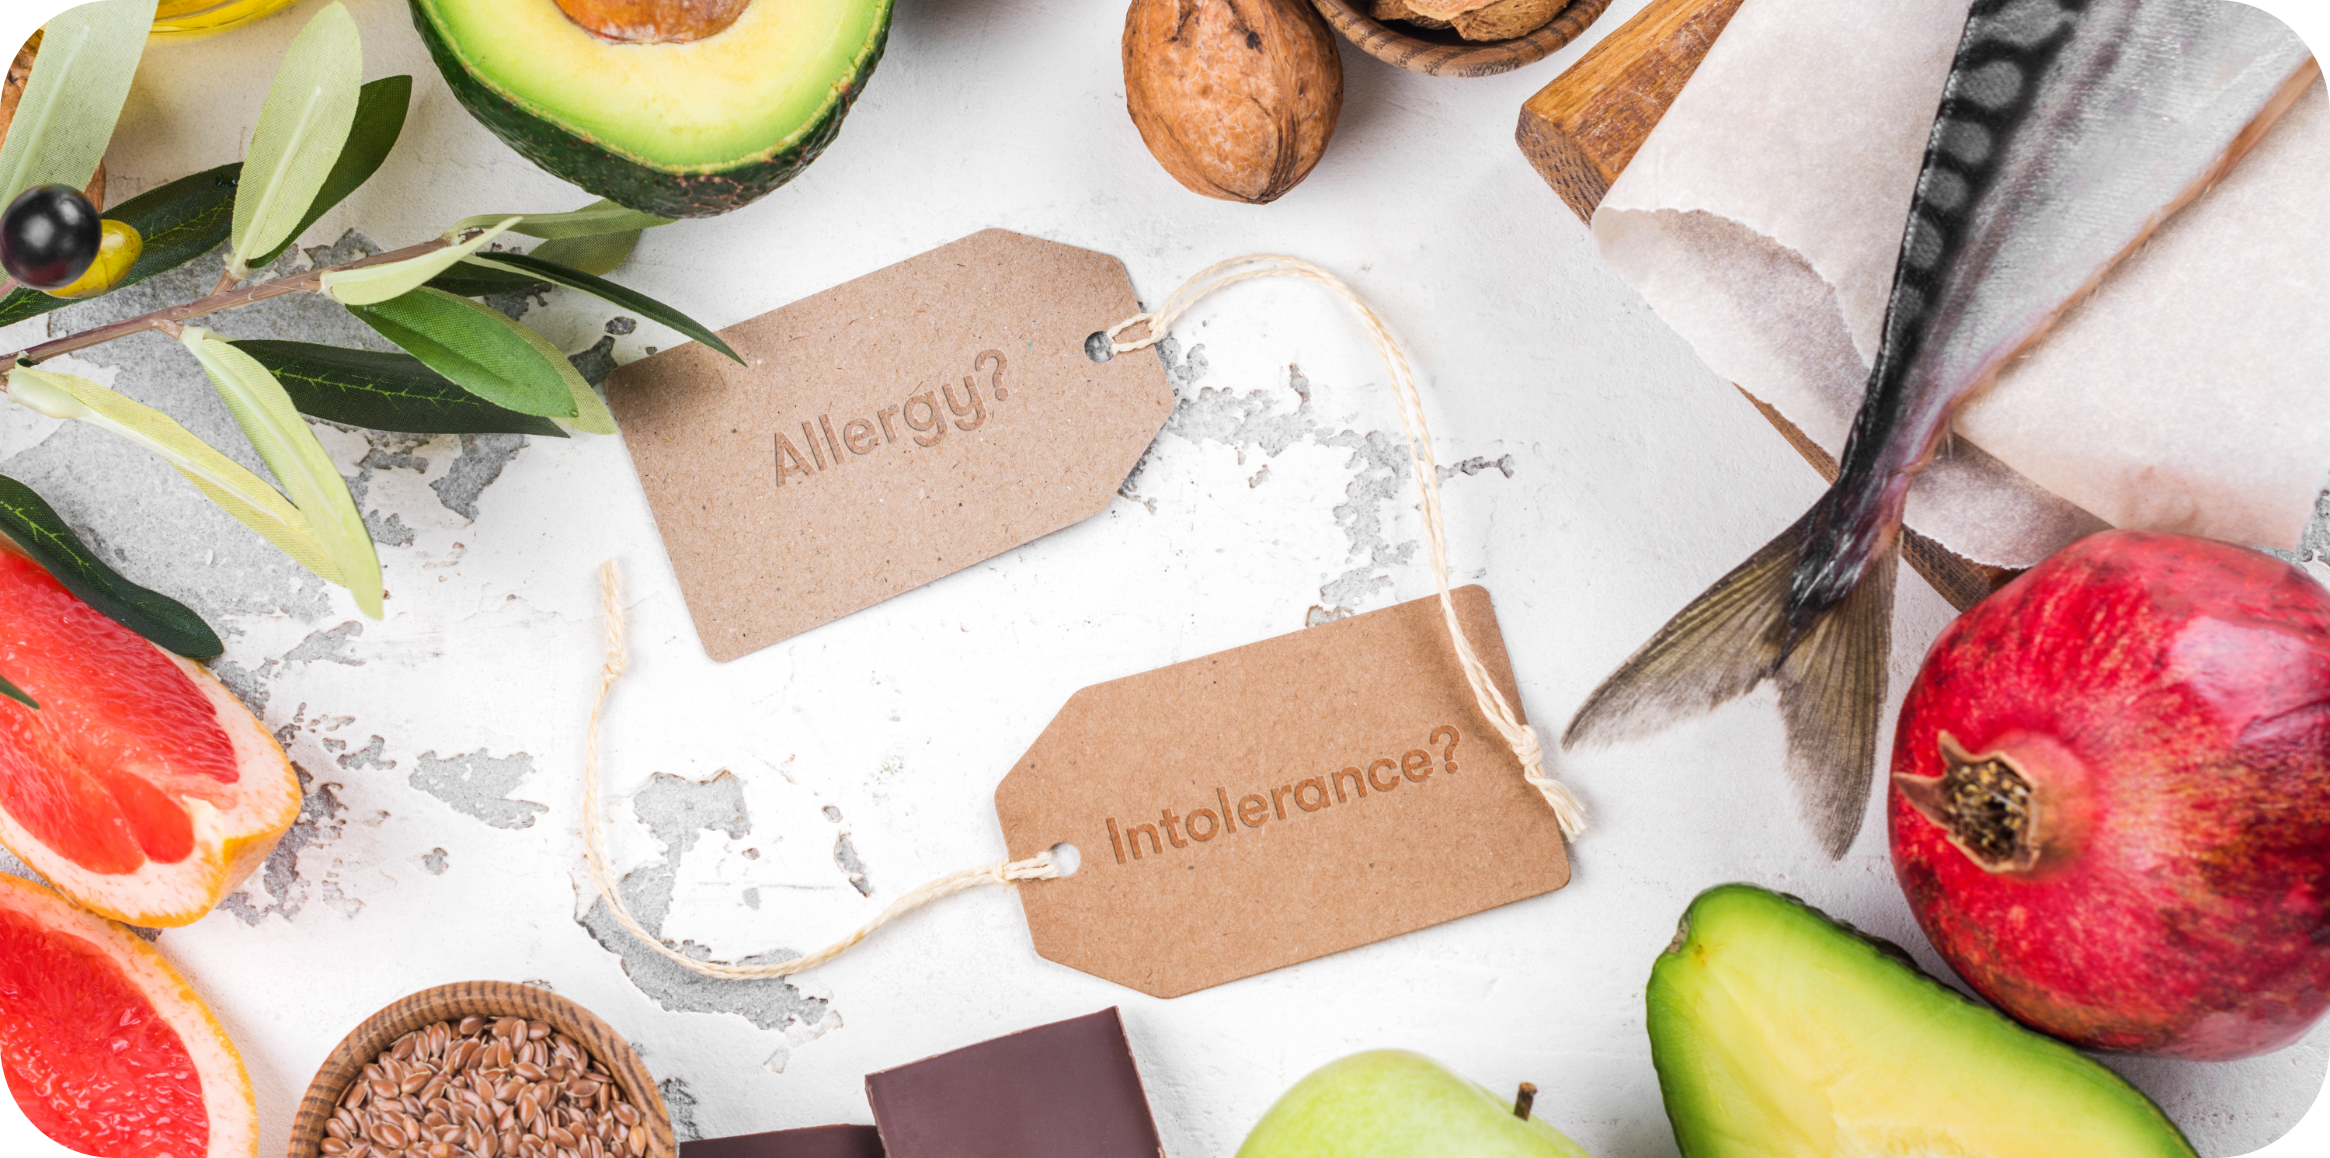 Allergy or Intolerance